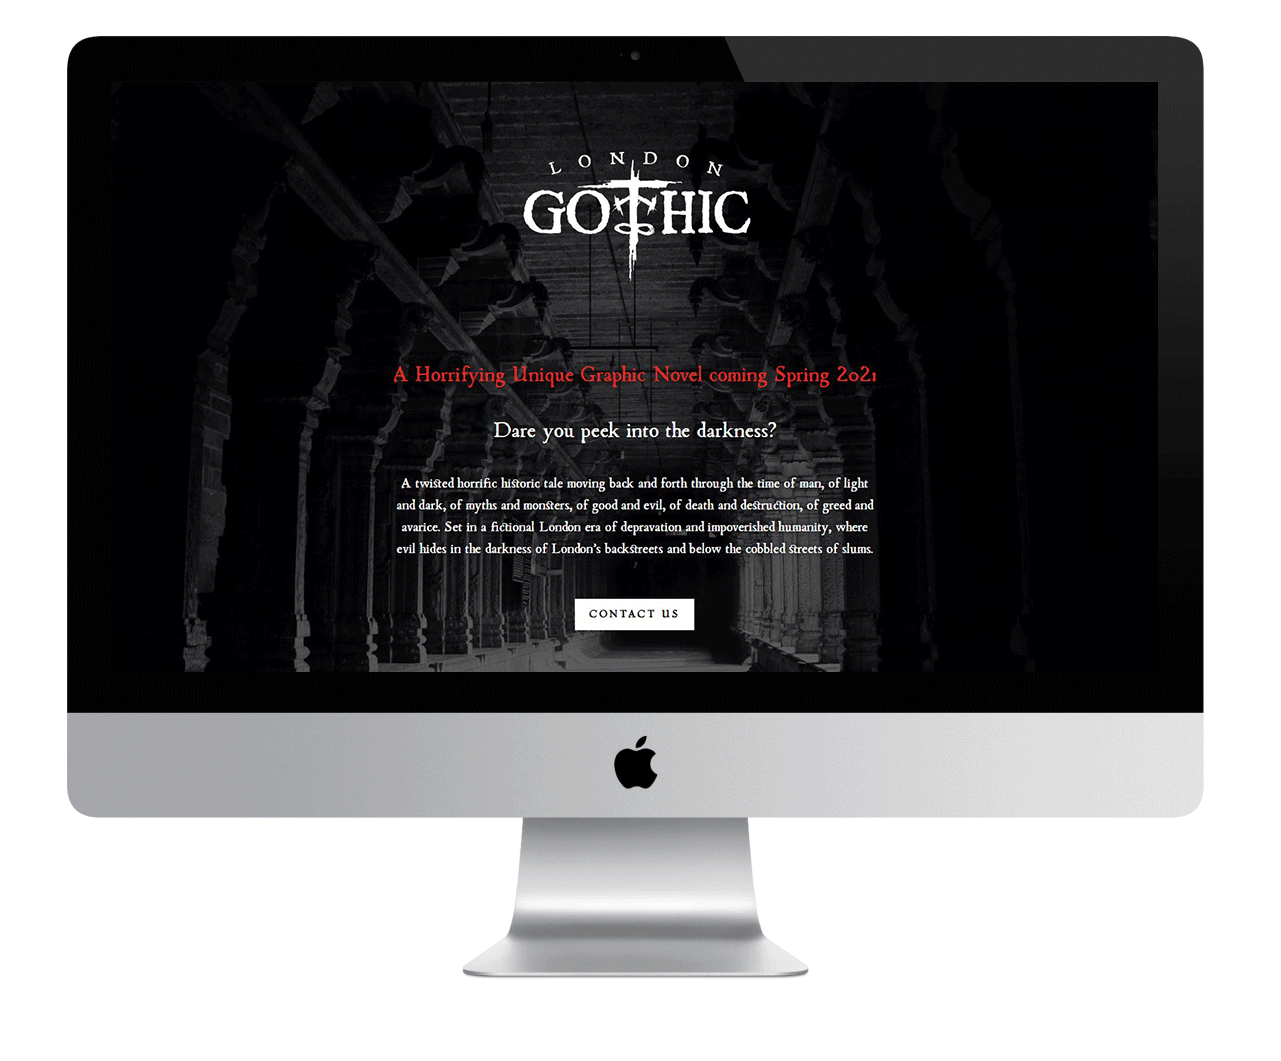 Apple monitor displaying the London Gothis website homepage